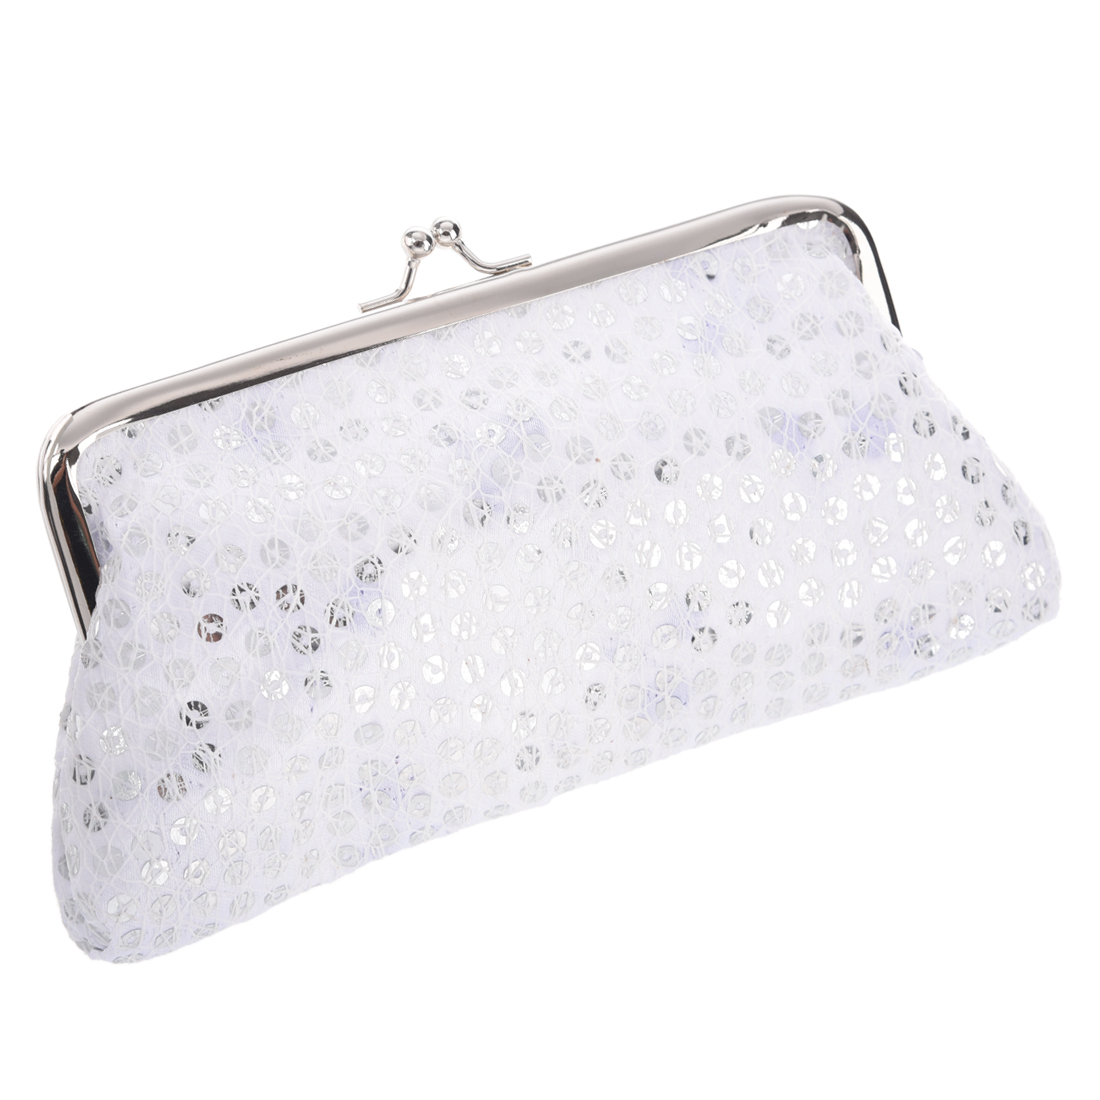 Hot Fashion Women Mini Sequins Clutch Evening Party Phone cheap Bag Wallet Purse(black) rhinestone sequins clutch evening bag